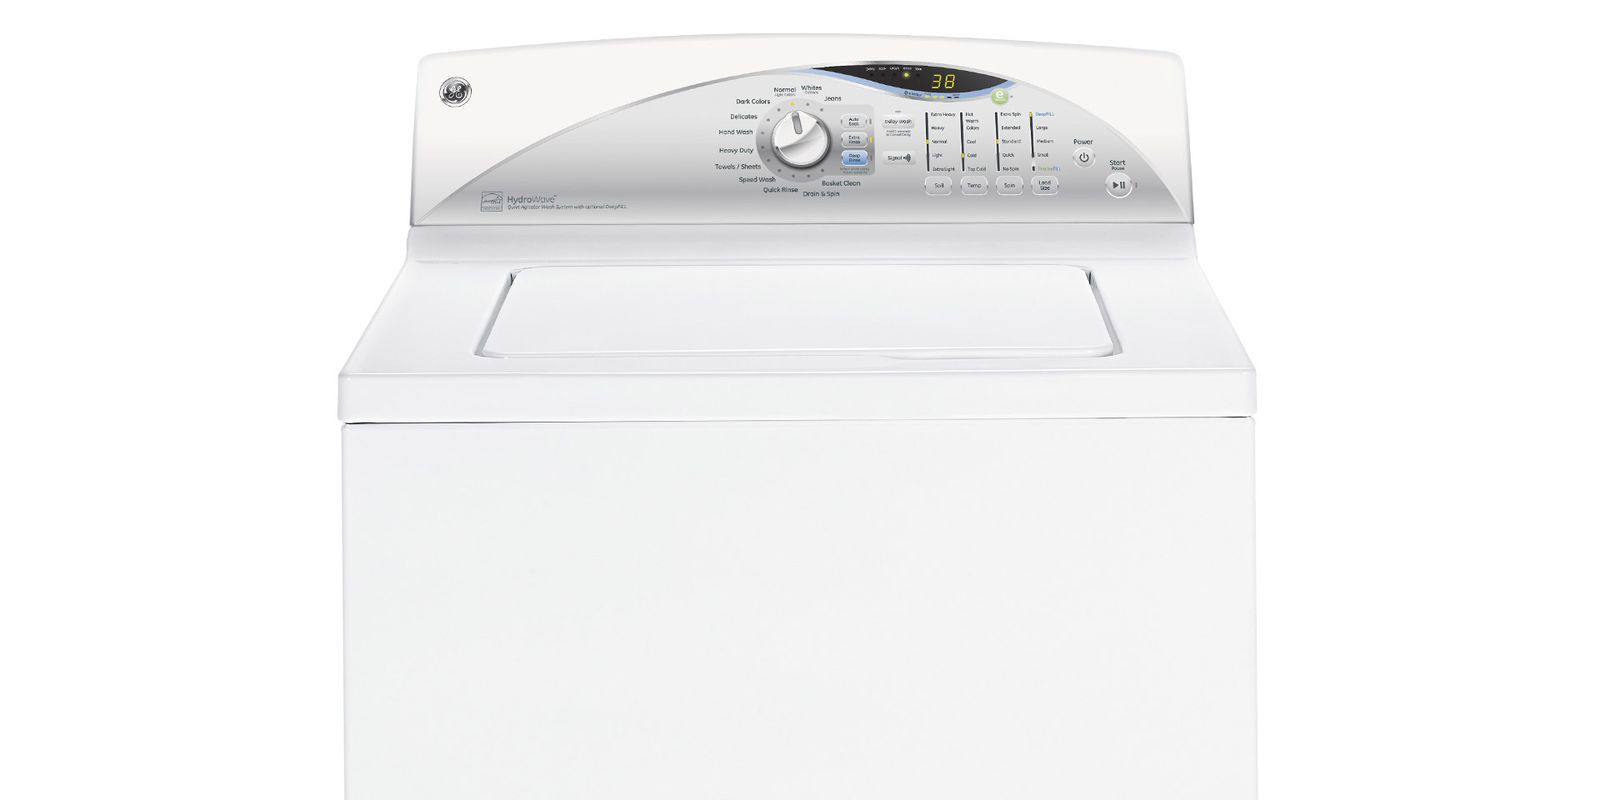 ge washer and dryer reviews. Great Cool Washers With Whirlpool Cabrio Reviews Wtw7000dw Manual. Ge Washer And Dryer